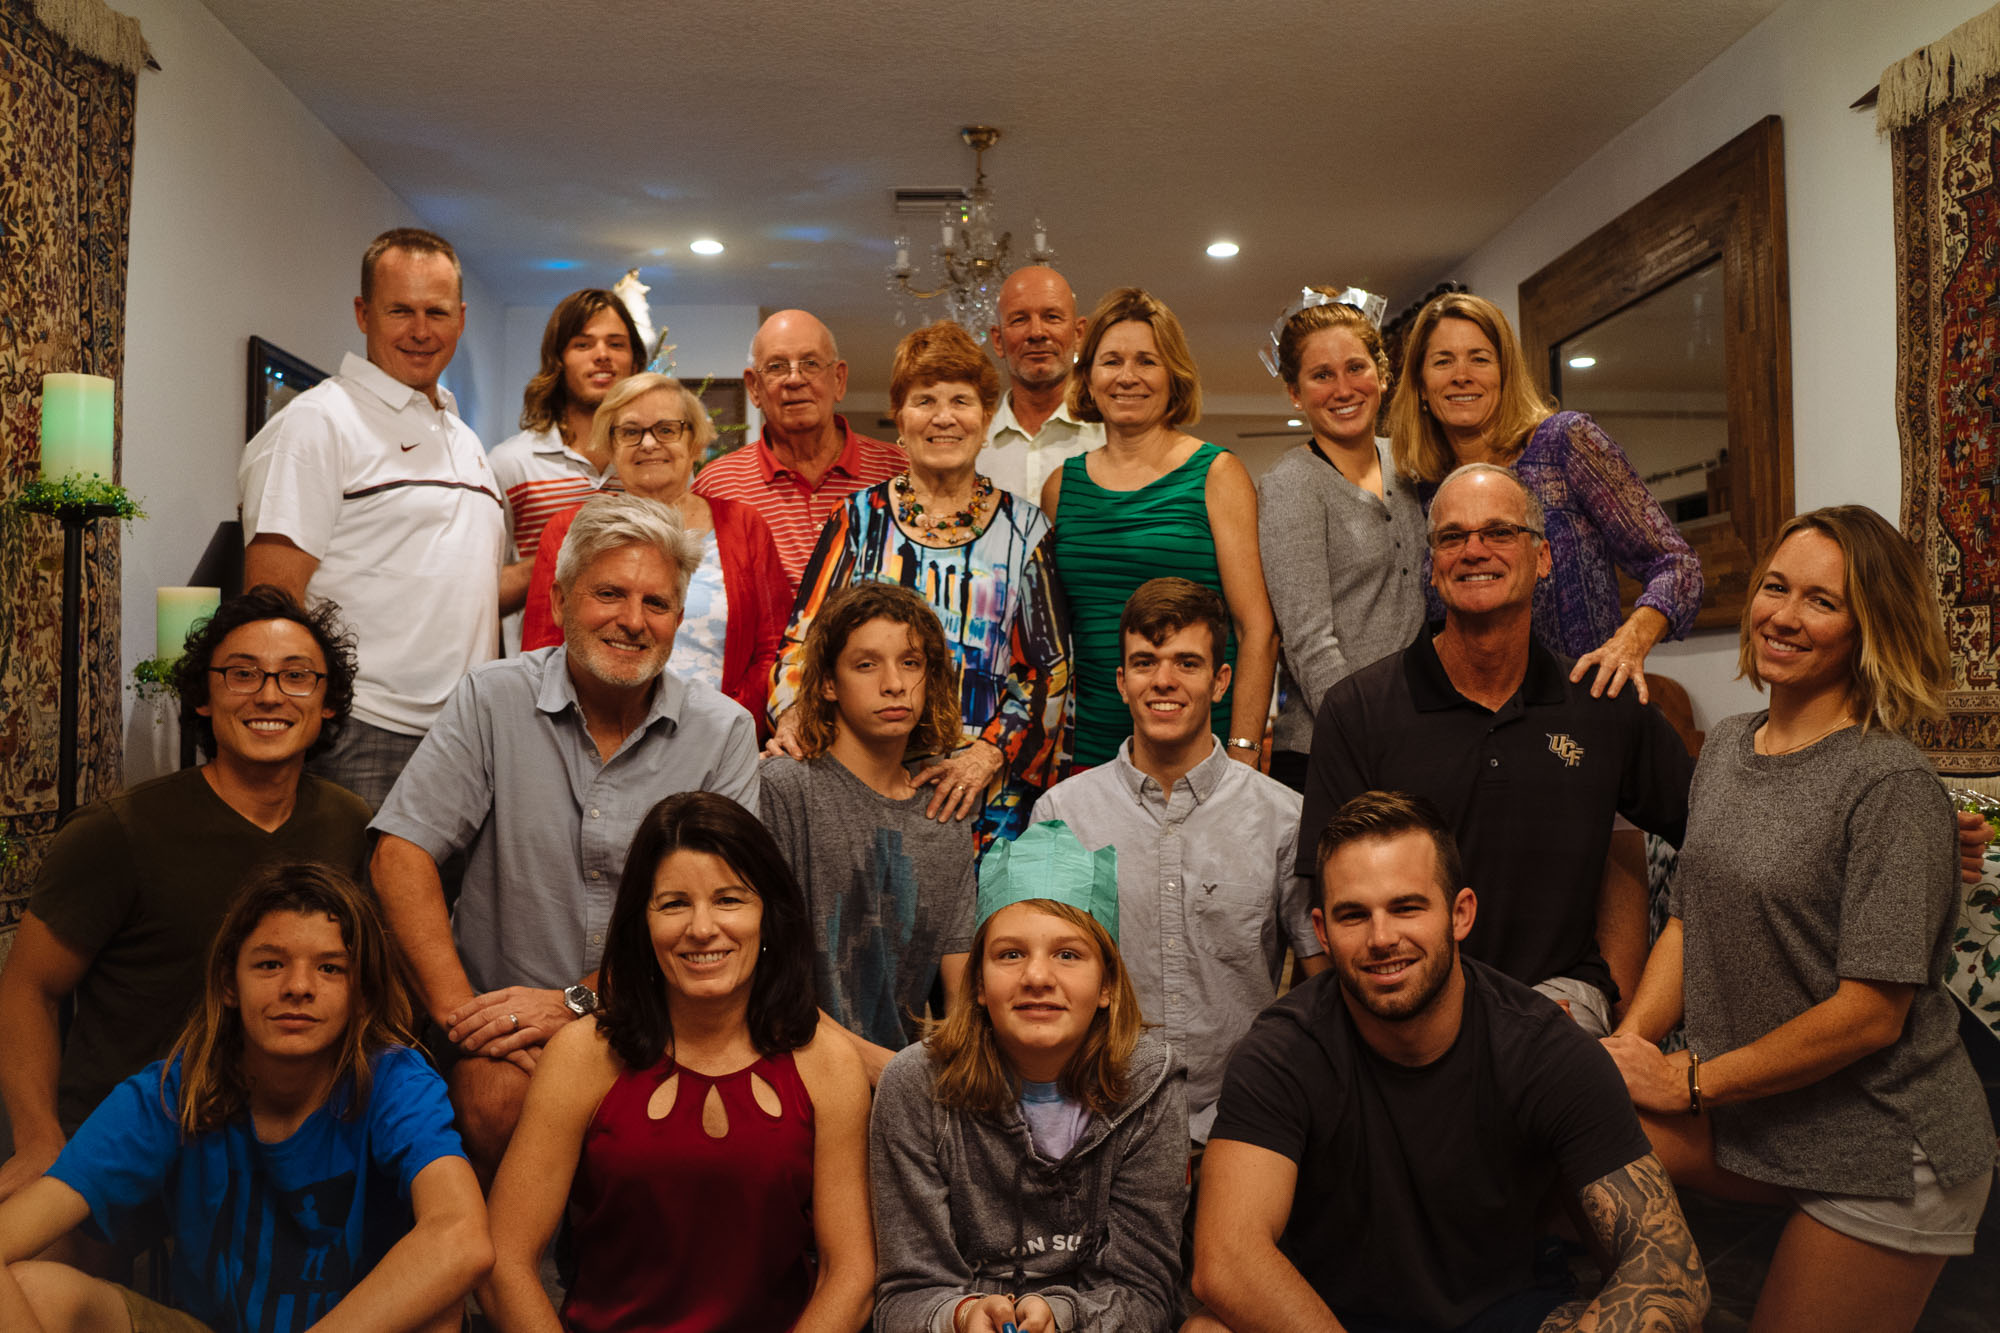 The Entire Family (MAK's side)